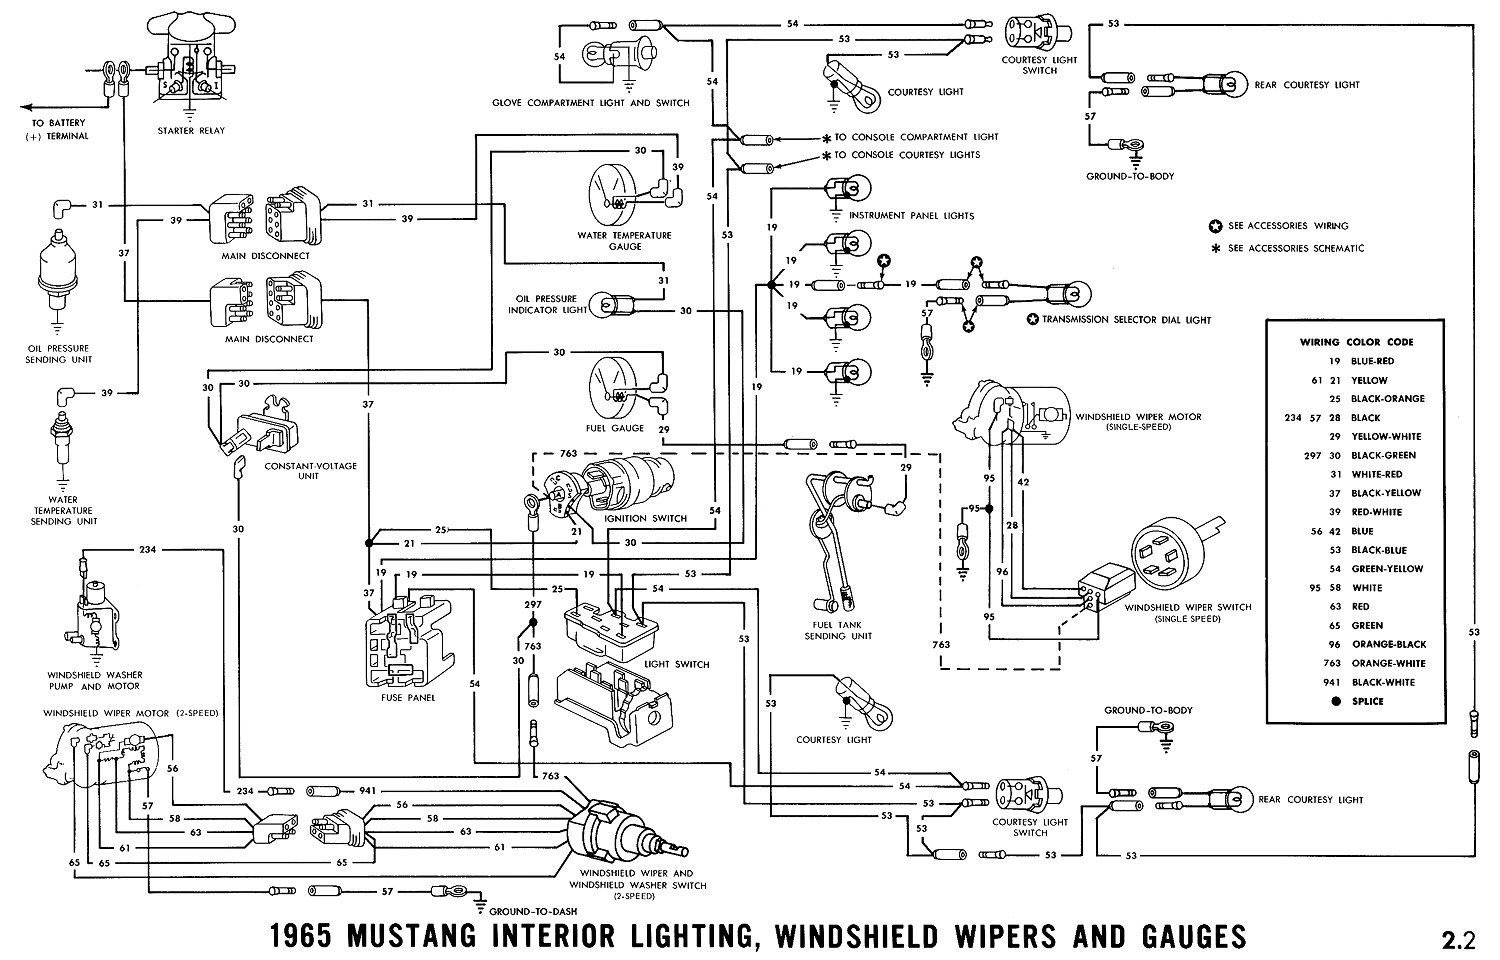 1965g mustang wiring diagrams mustang engine diagram \u2022 free wiring 1965 Ford Mustang at honlapkeszites.co